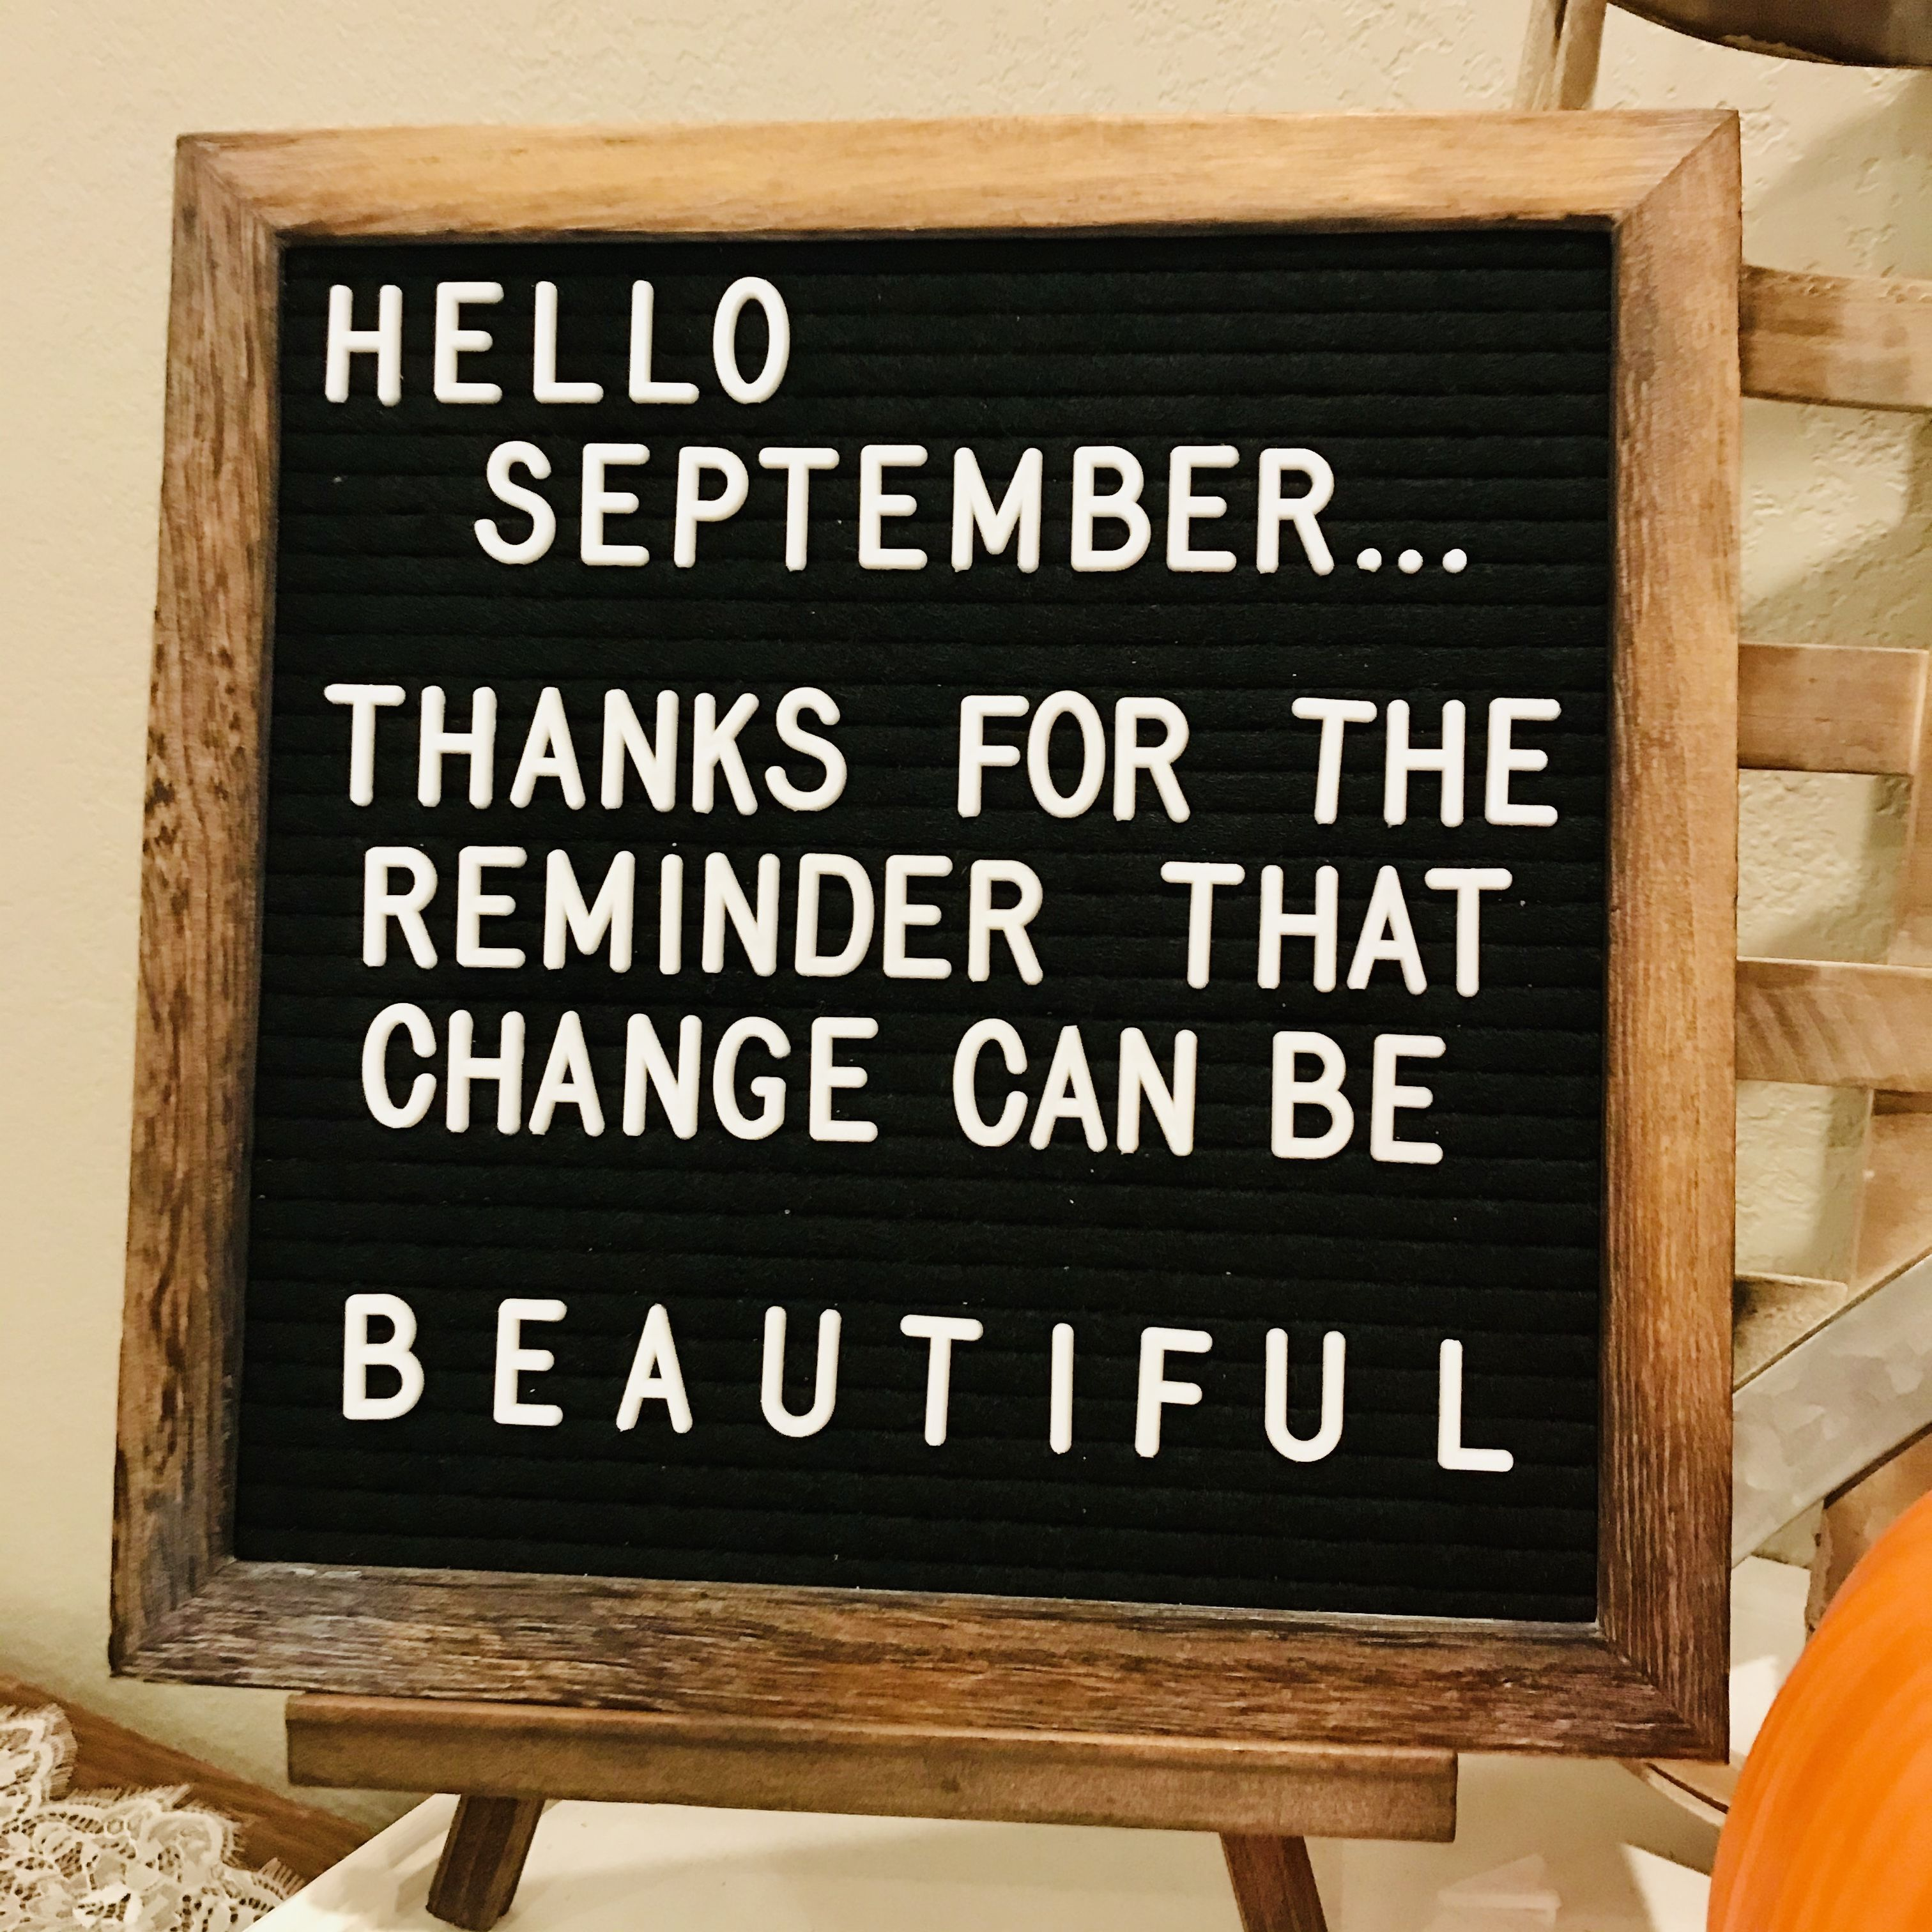 Hello september  #helloseptember Hello September felt board #helloseptember Hello september  #helloseptember Hello September felt board #helloseptember Hello september  #helloseptember Hello September felt board #helloseptember Hello september  #helloseptember Hello September felt board #helloseptember